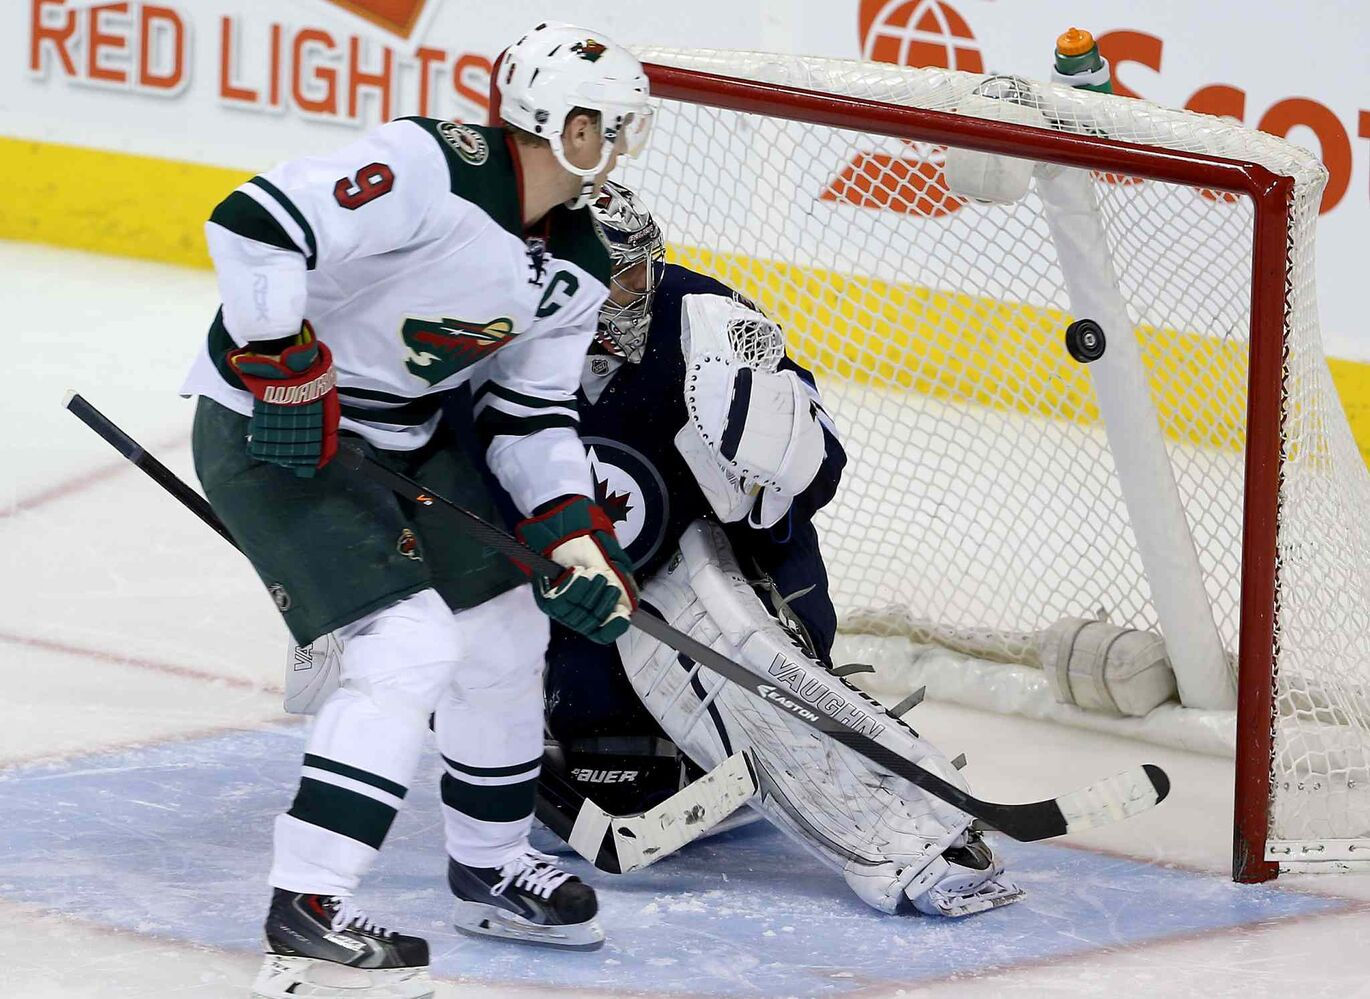 Minnesota Wild's Mikko Koivu beats Winnipeg Jets goaltender Ondrej Pavelec during the shootout. (TREVOR HAGAN / WINNIPEG FREE PRESS)